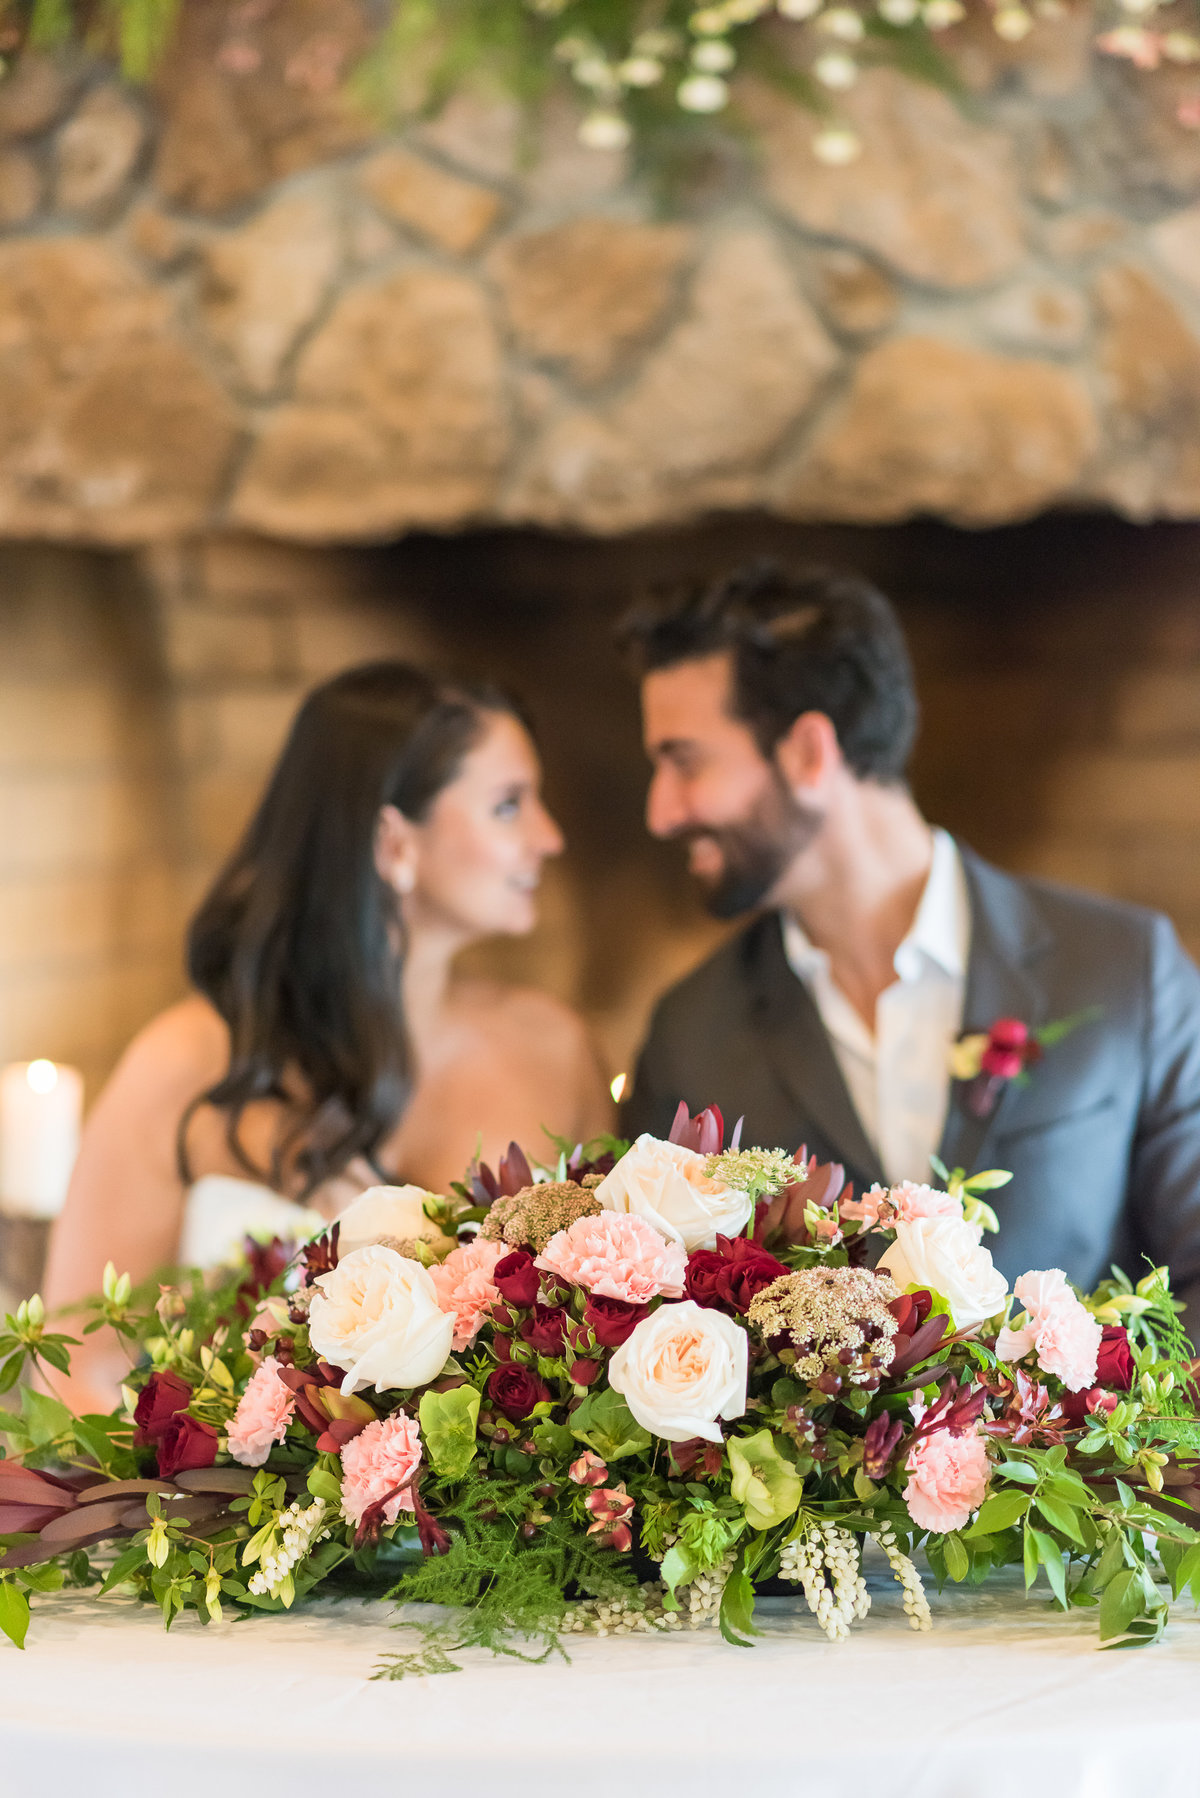 Burgundy and blush wedding at The Lodge at Little Seneca Creek